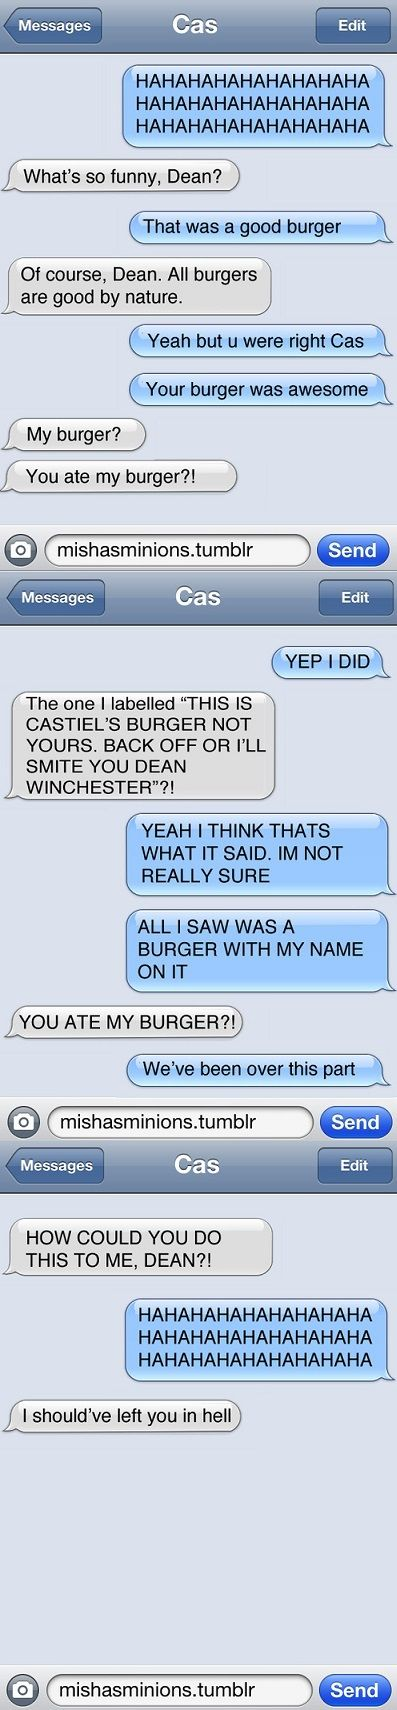 I should have left you in hell cas and dean texting